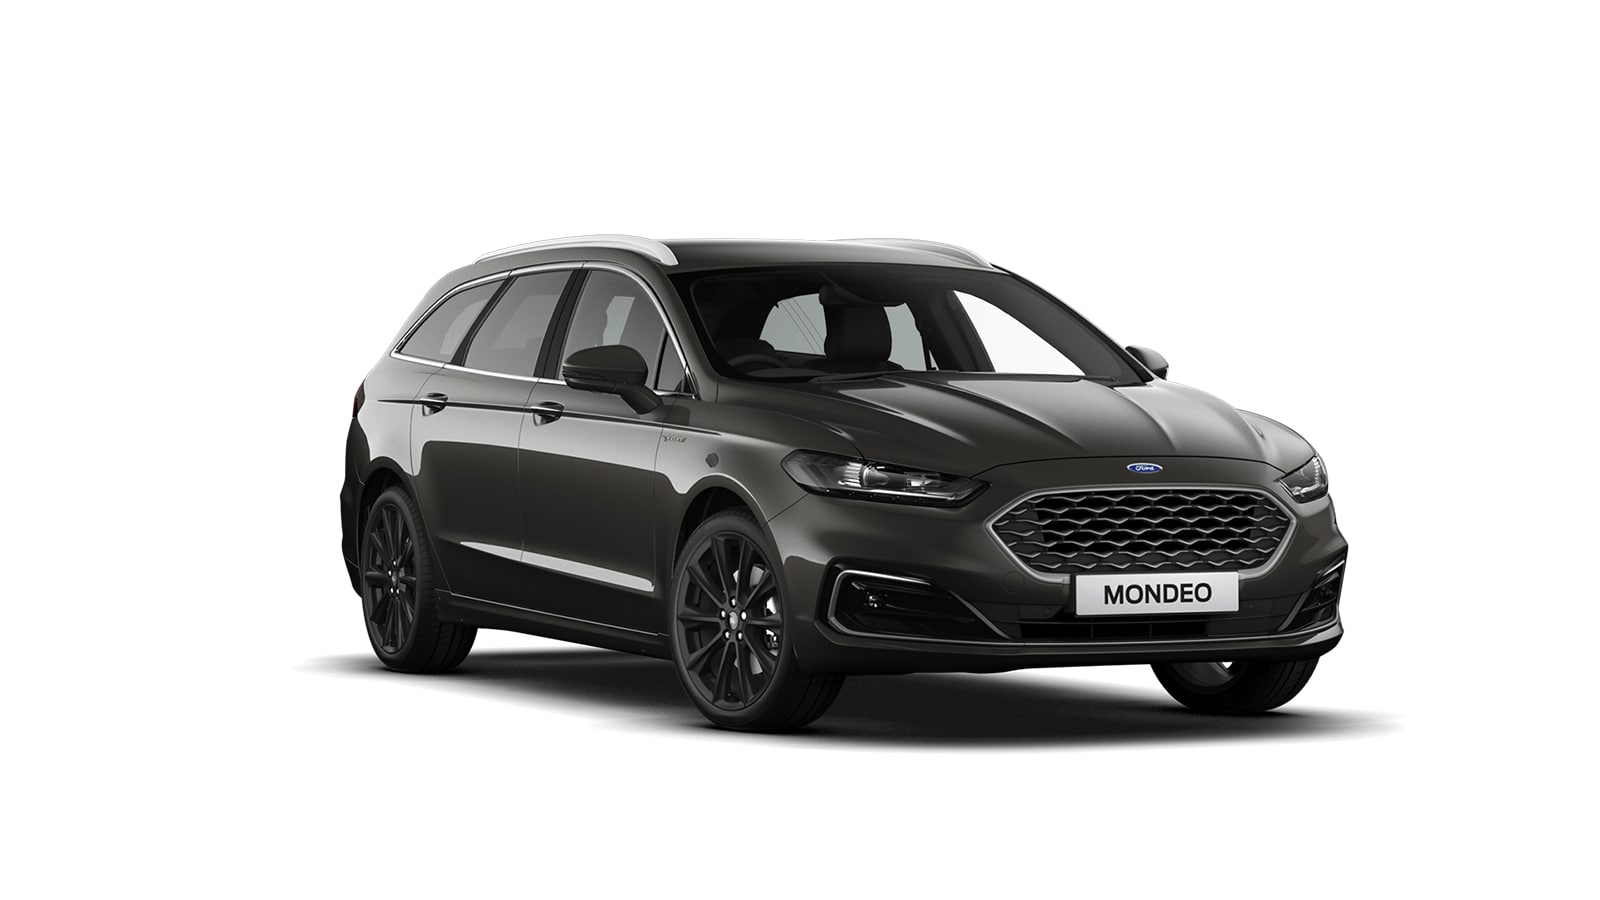 NEW MONDEO HYBRID Vignale Hybrid Estate in Magnetic